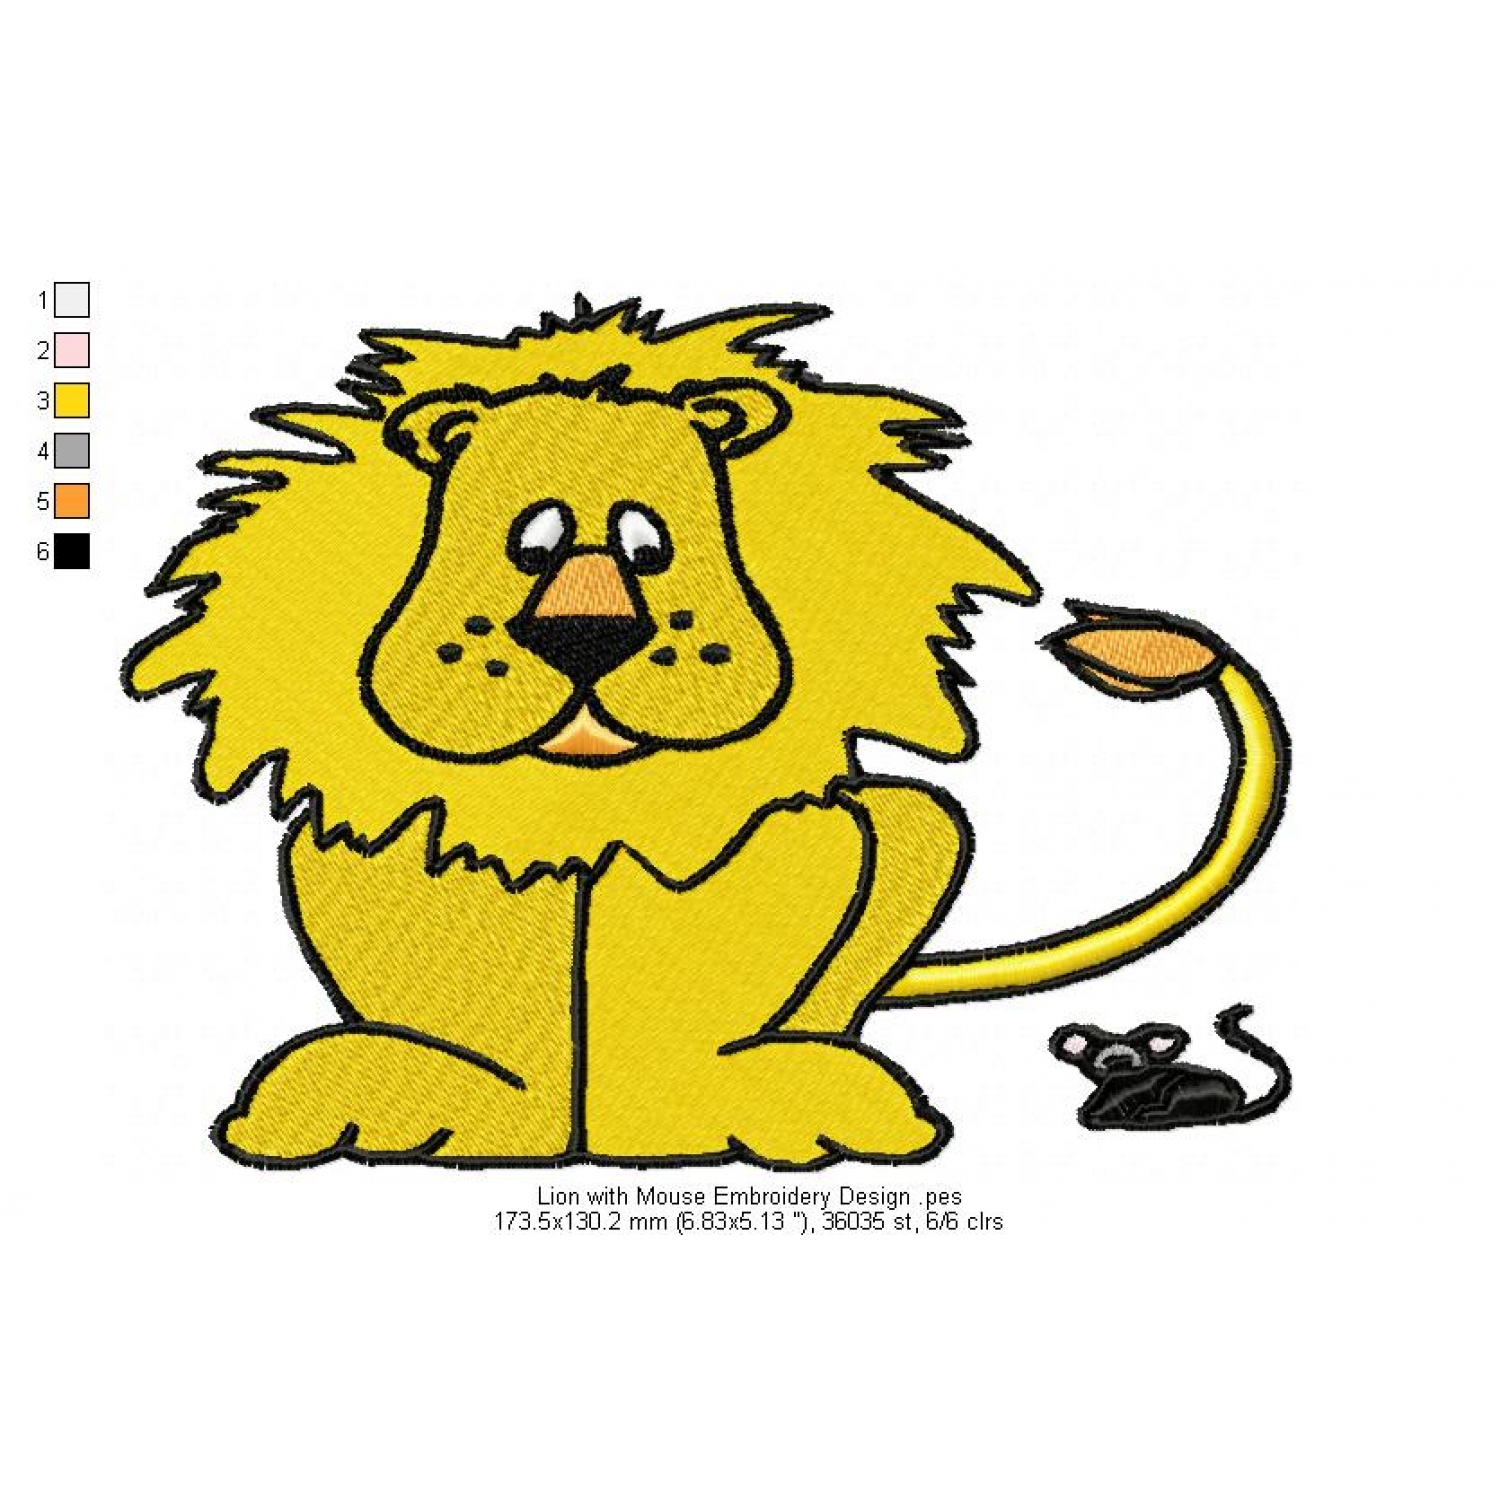 Lion With Mouse Embroidery Design